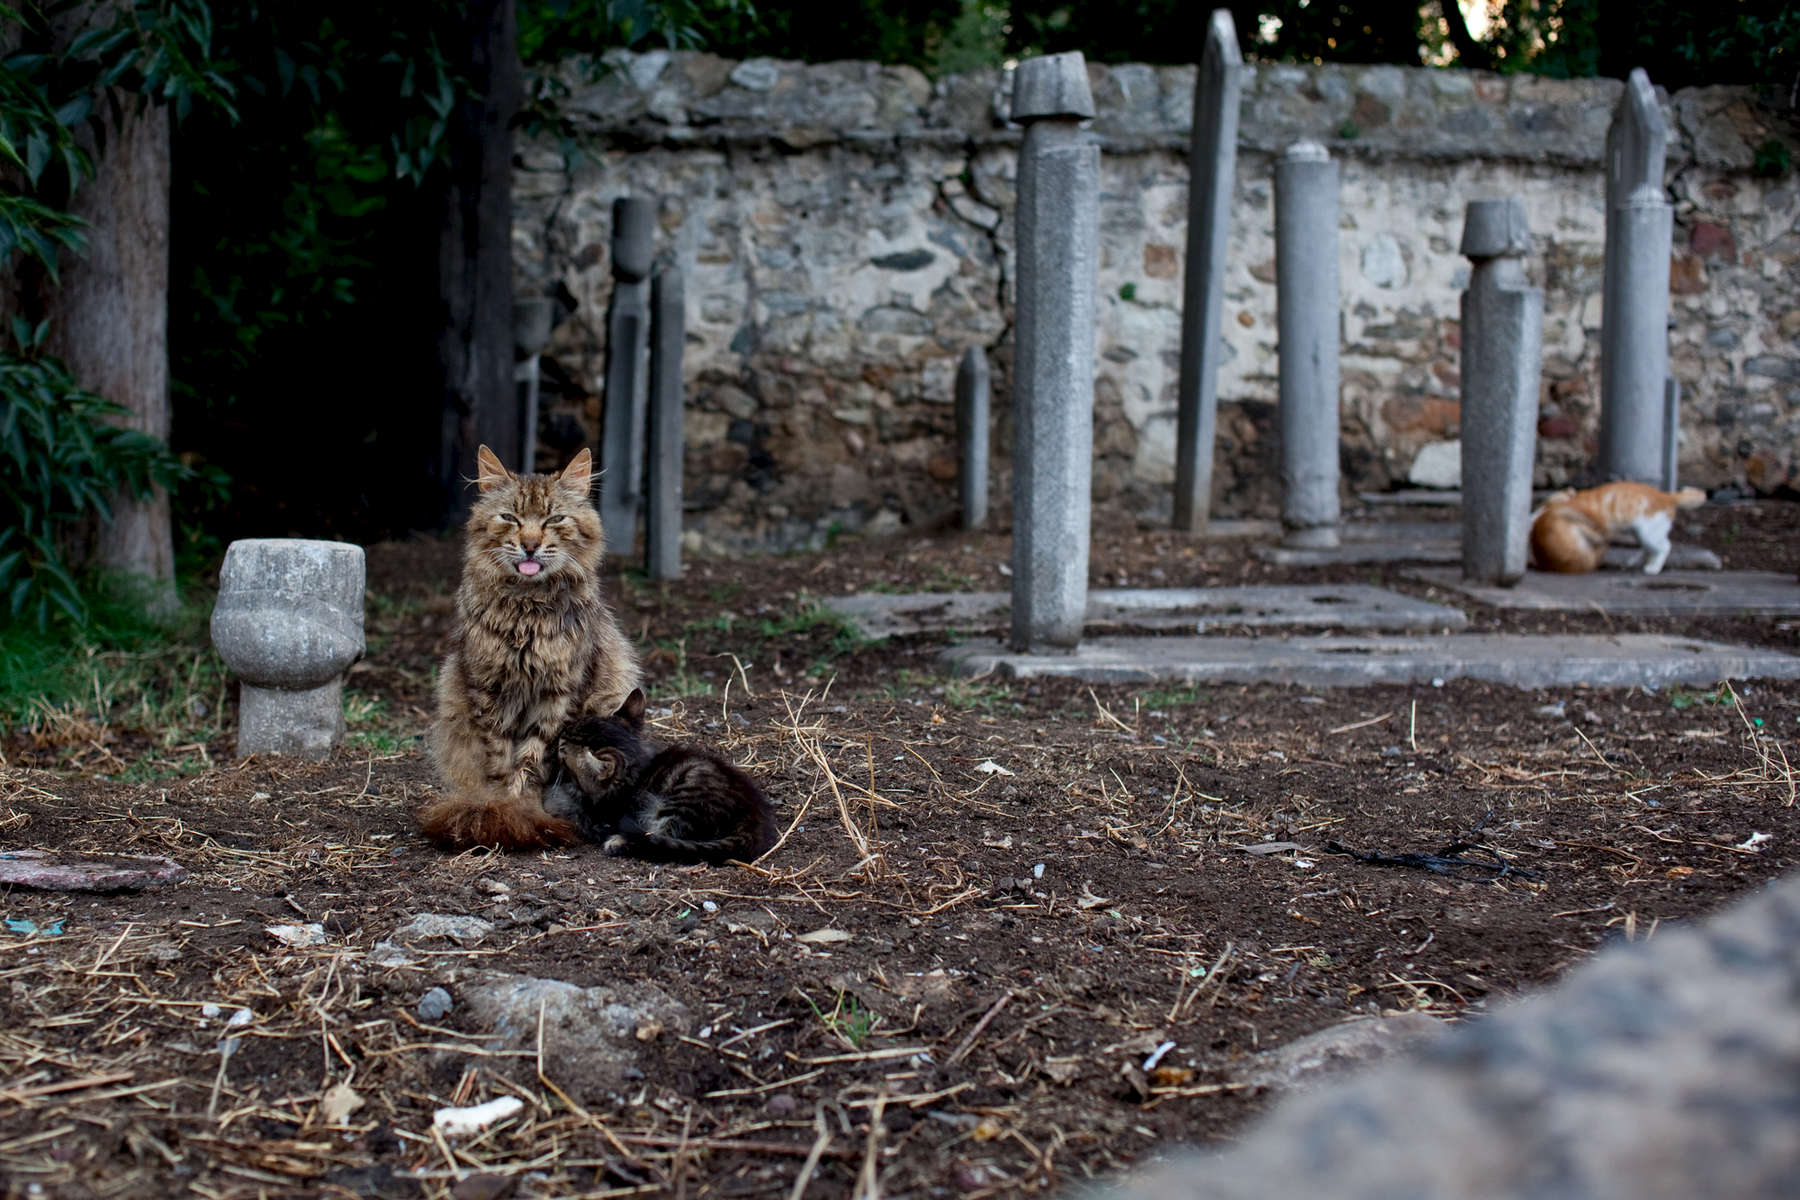 A mother cat nurses one of her kittens in an old cemetery in Kadiköy.